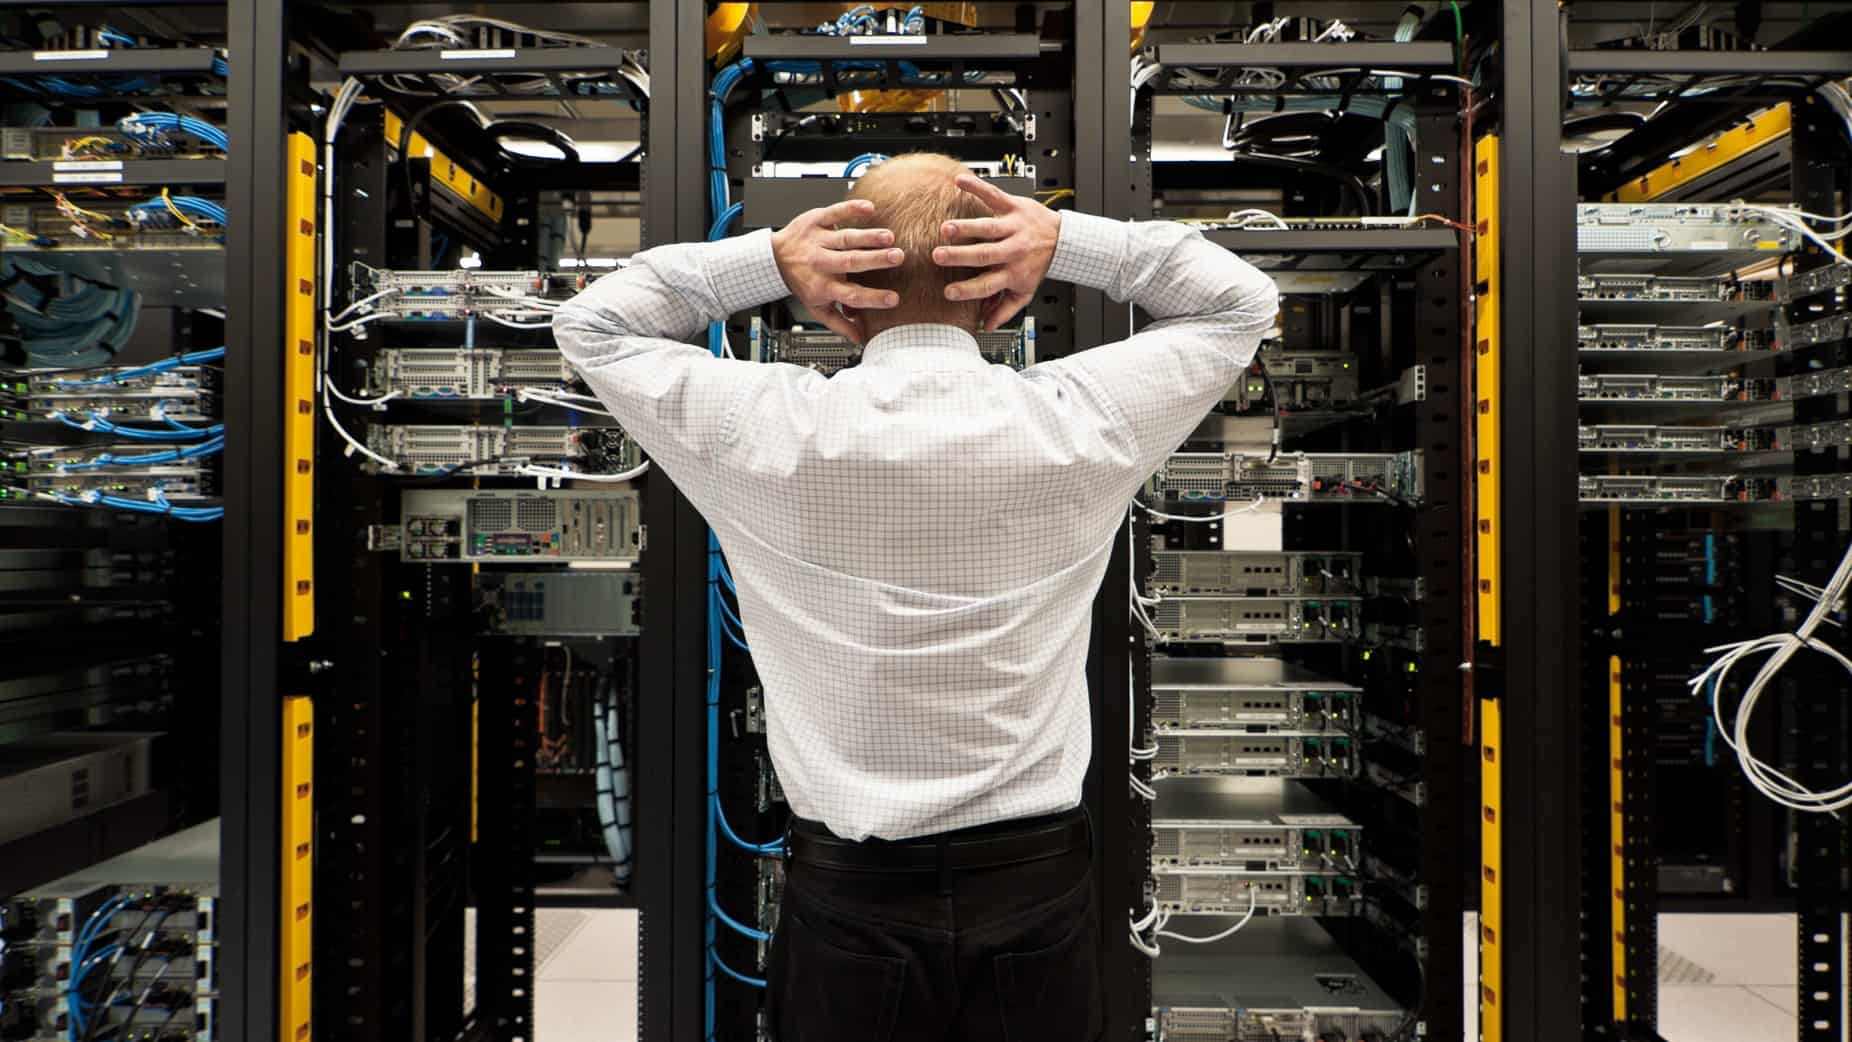 A stressed man with his hands on head trying to work out a major systems failure